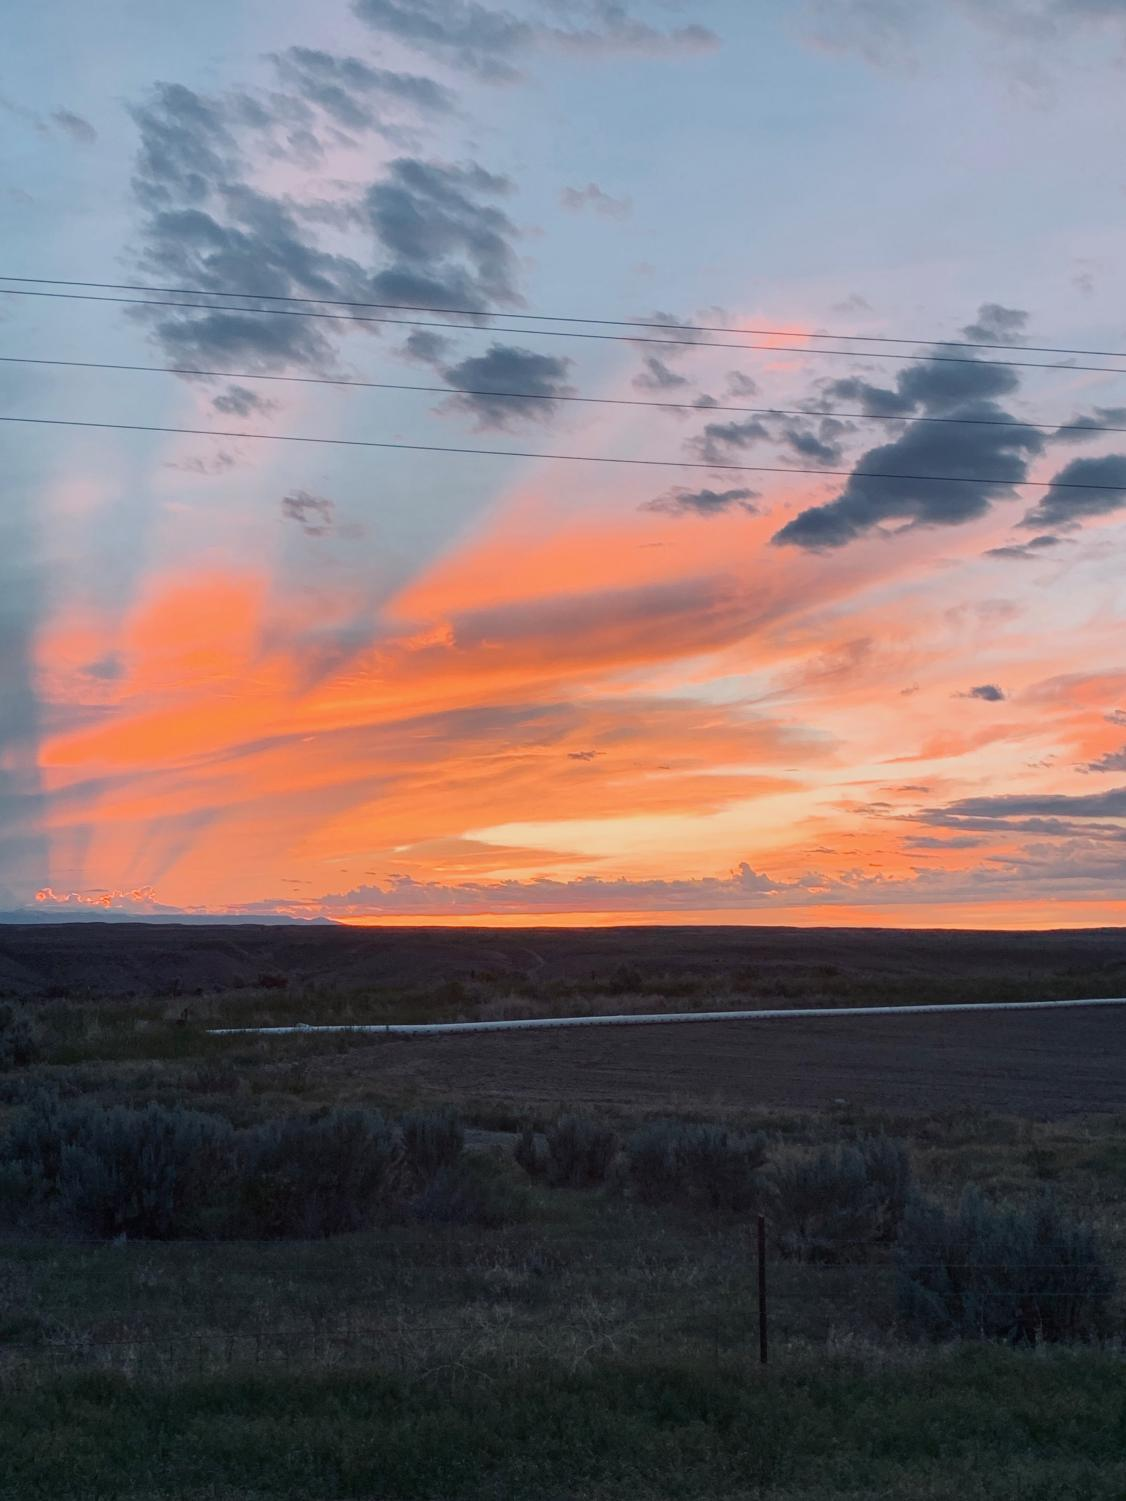 A+sunset+taken+on+the+Highway+295+between+Powell+and+Greybull+while+Mr.+Brandon+Preator+drives+his+family+home+to+Burlington.